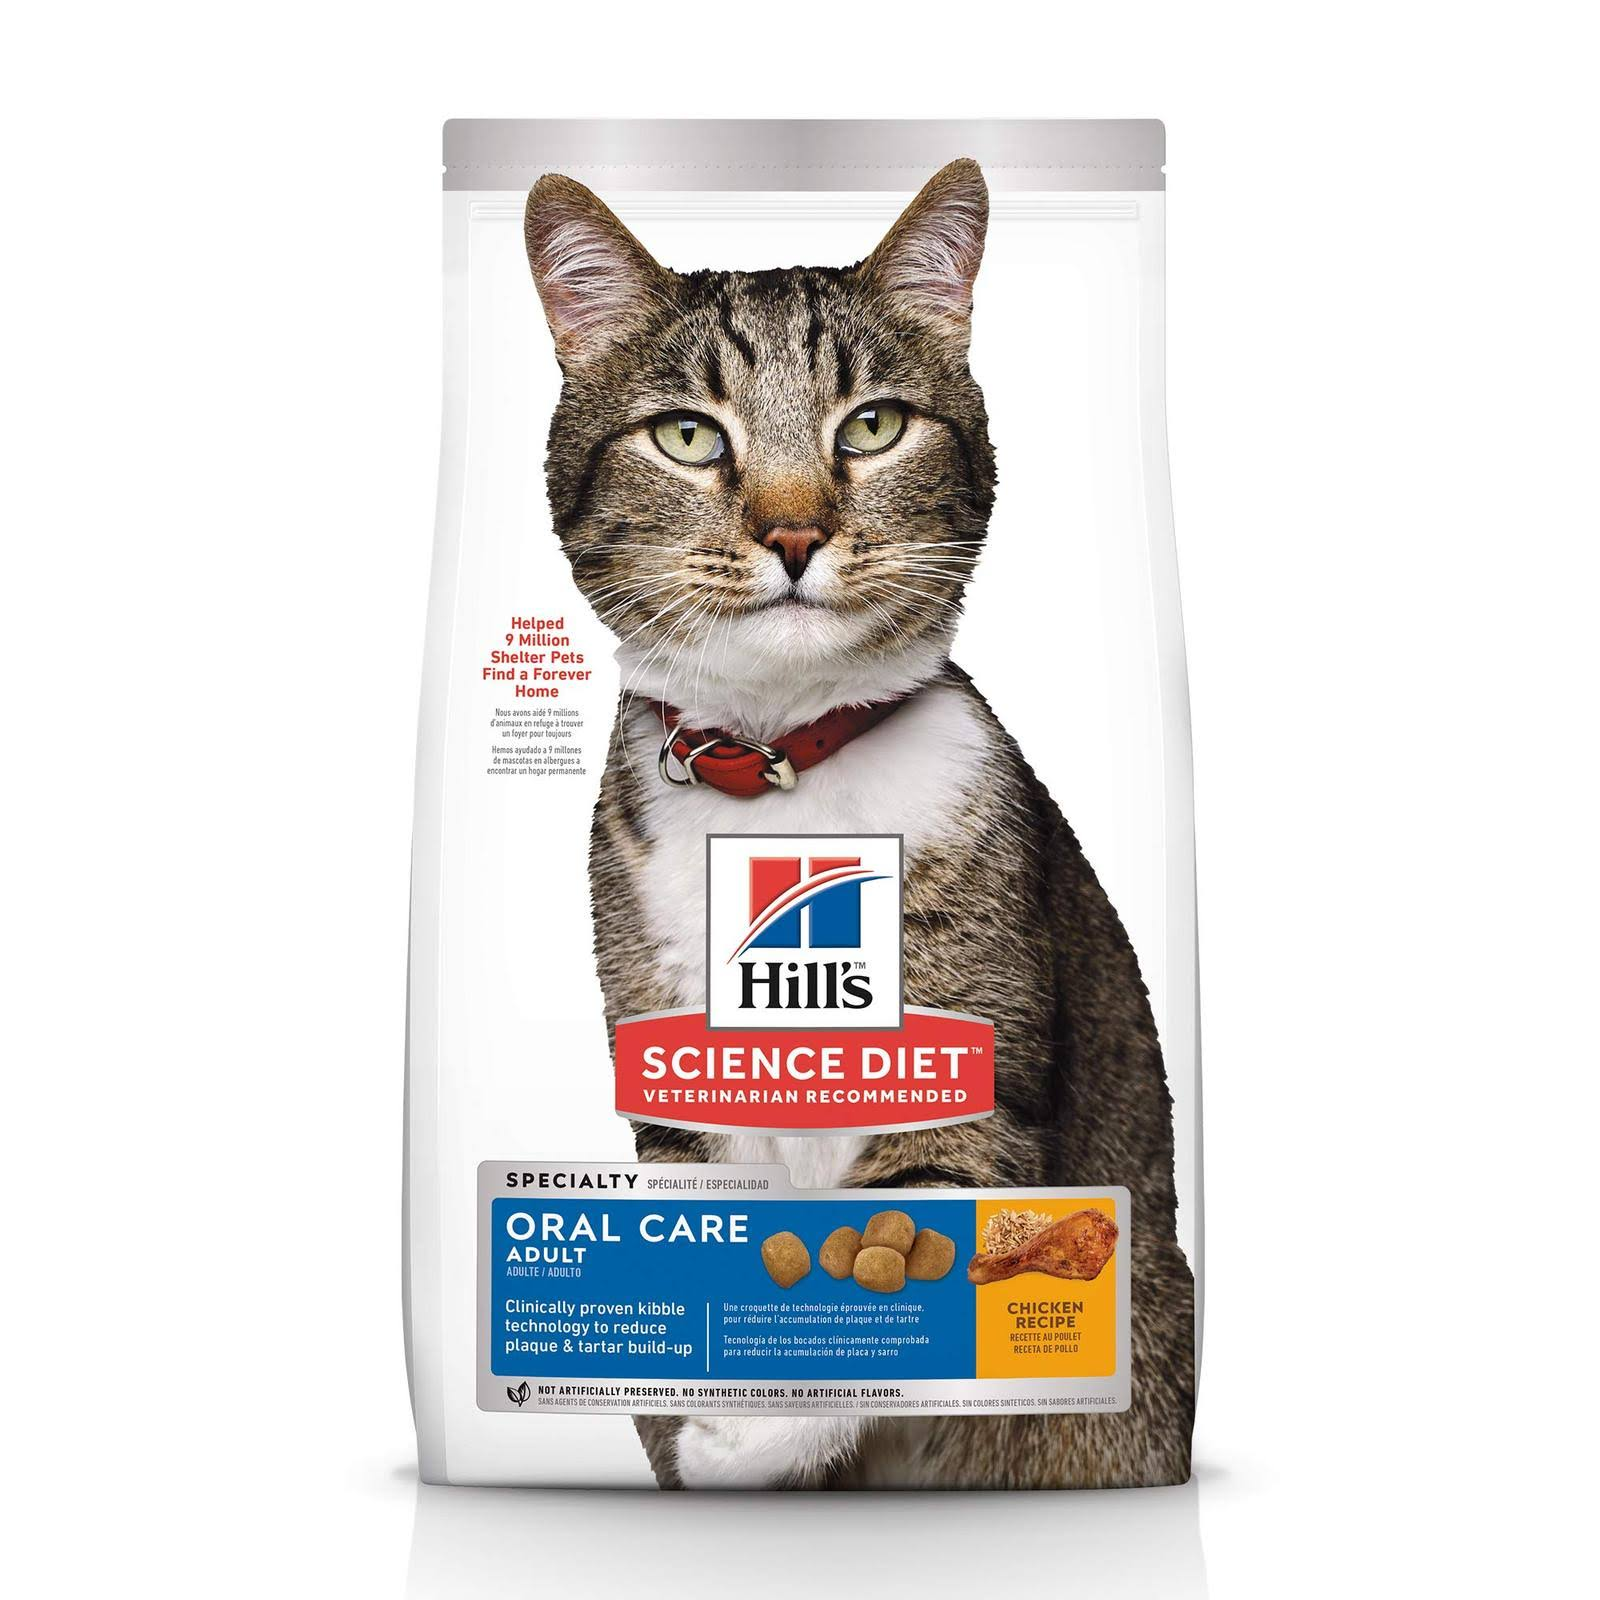 Hill's Science Diet Oral Care Premium Natural Adult Cat Food - Chicken Recipe, 7lbs